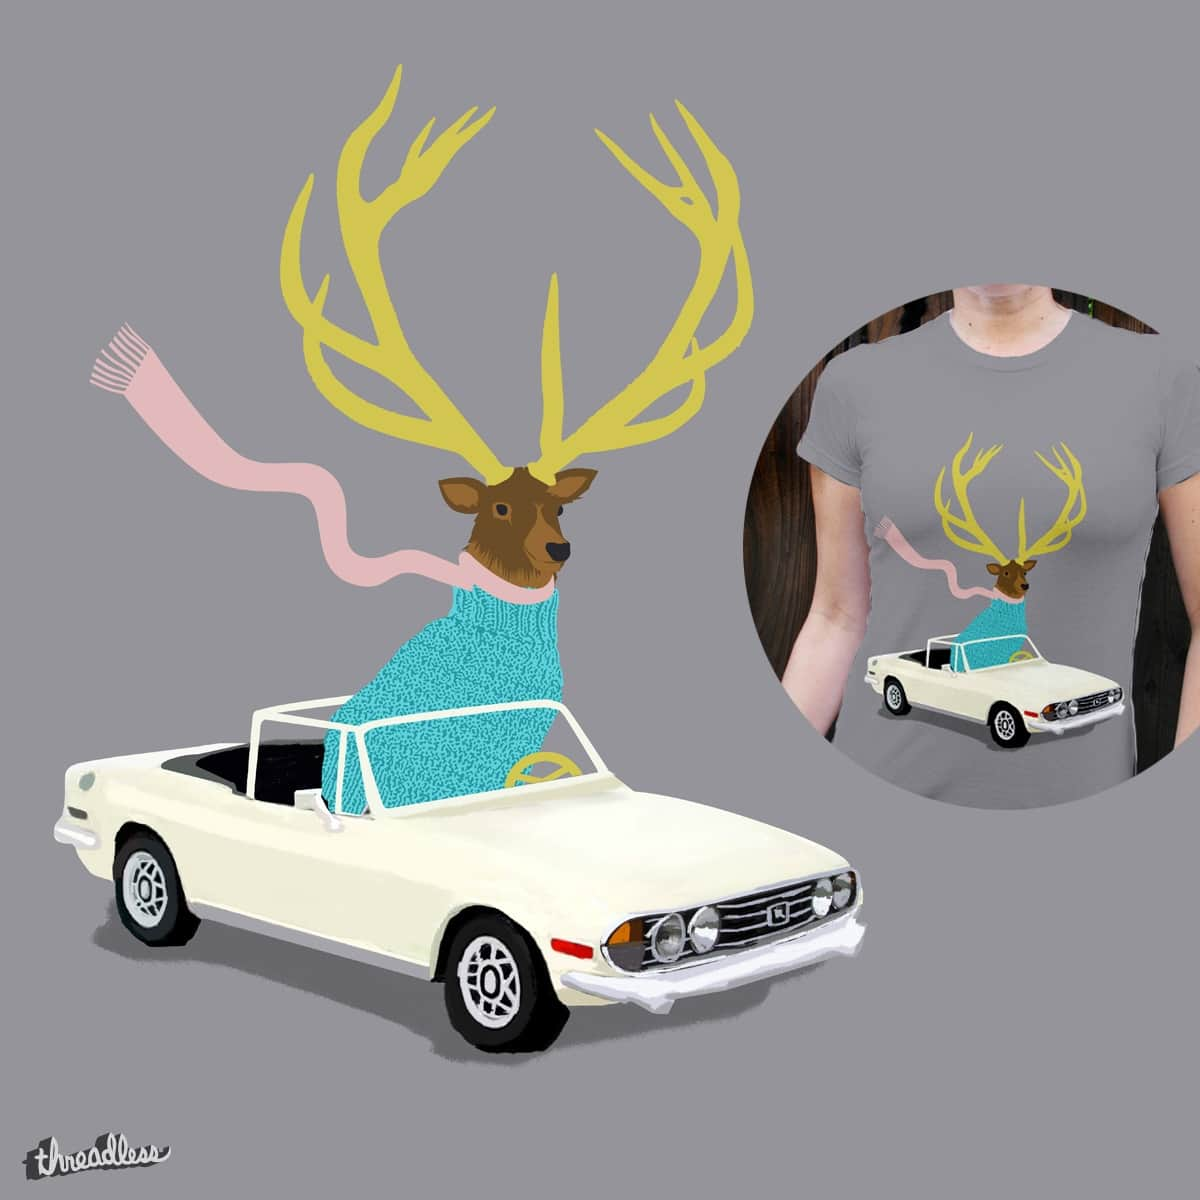 The Stag by levman on Threadless